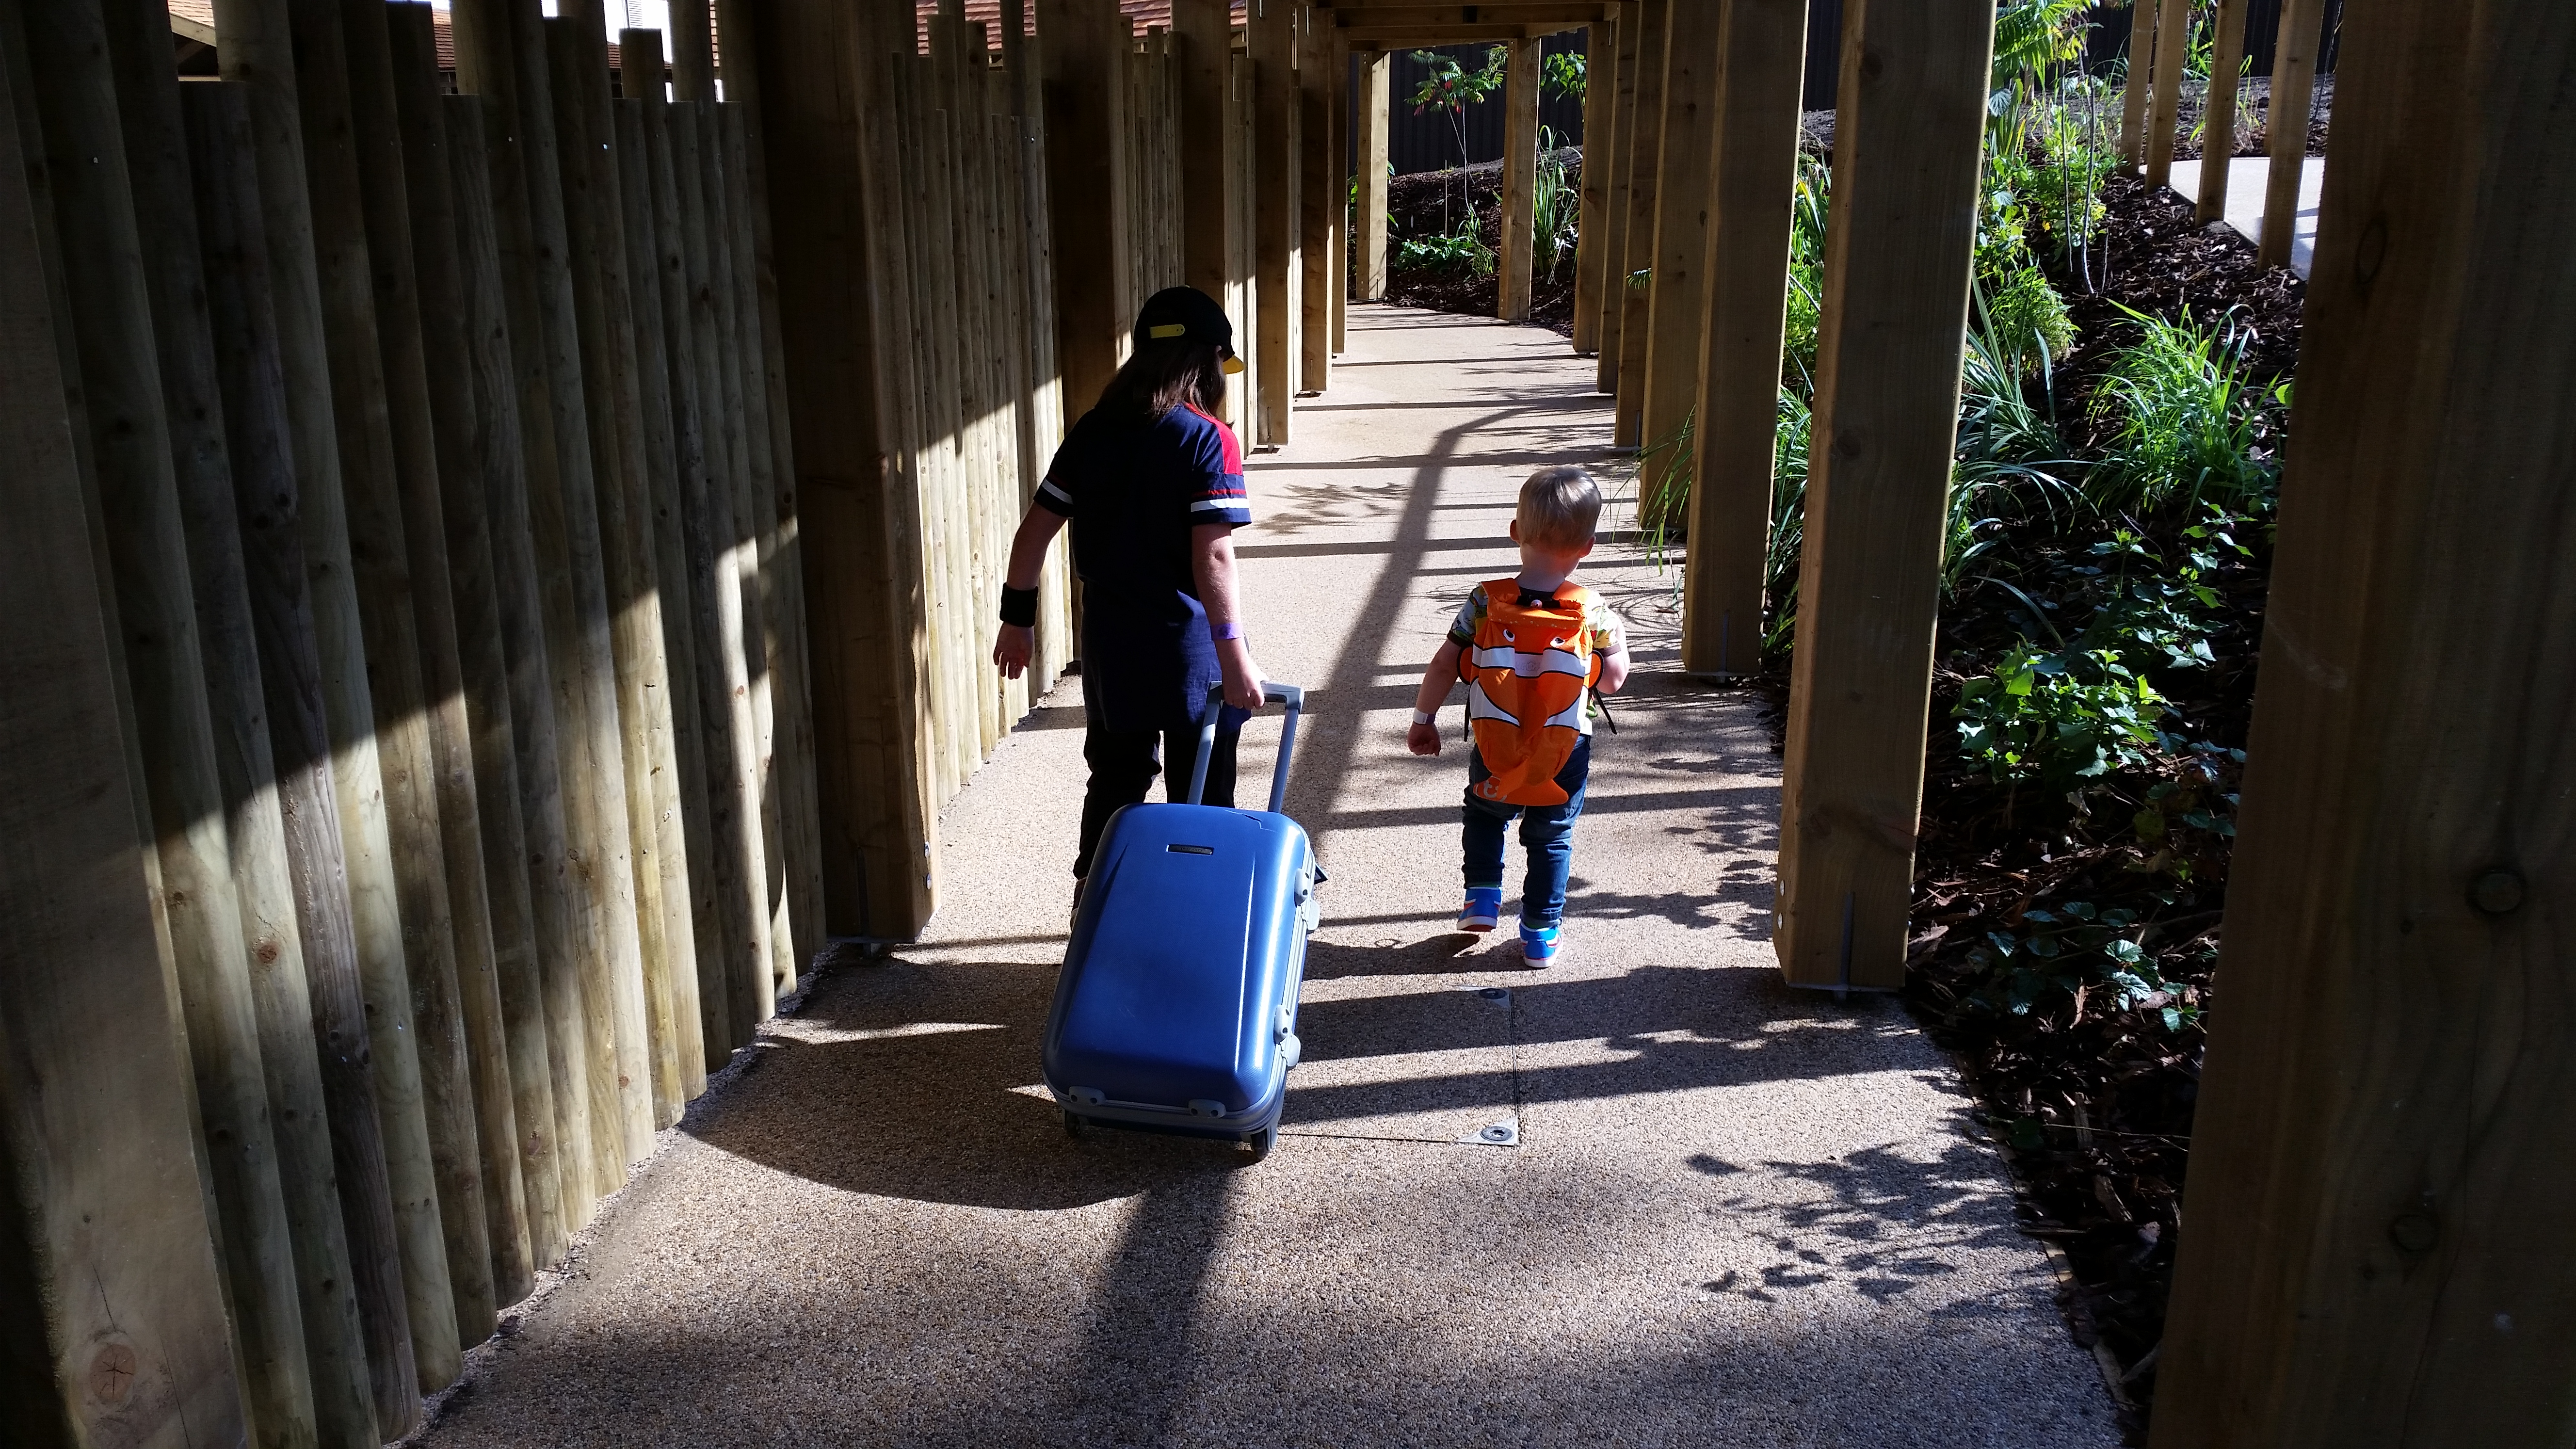 Review Chessington Azteca Hotel A Walk On The Wild